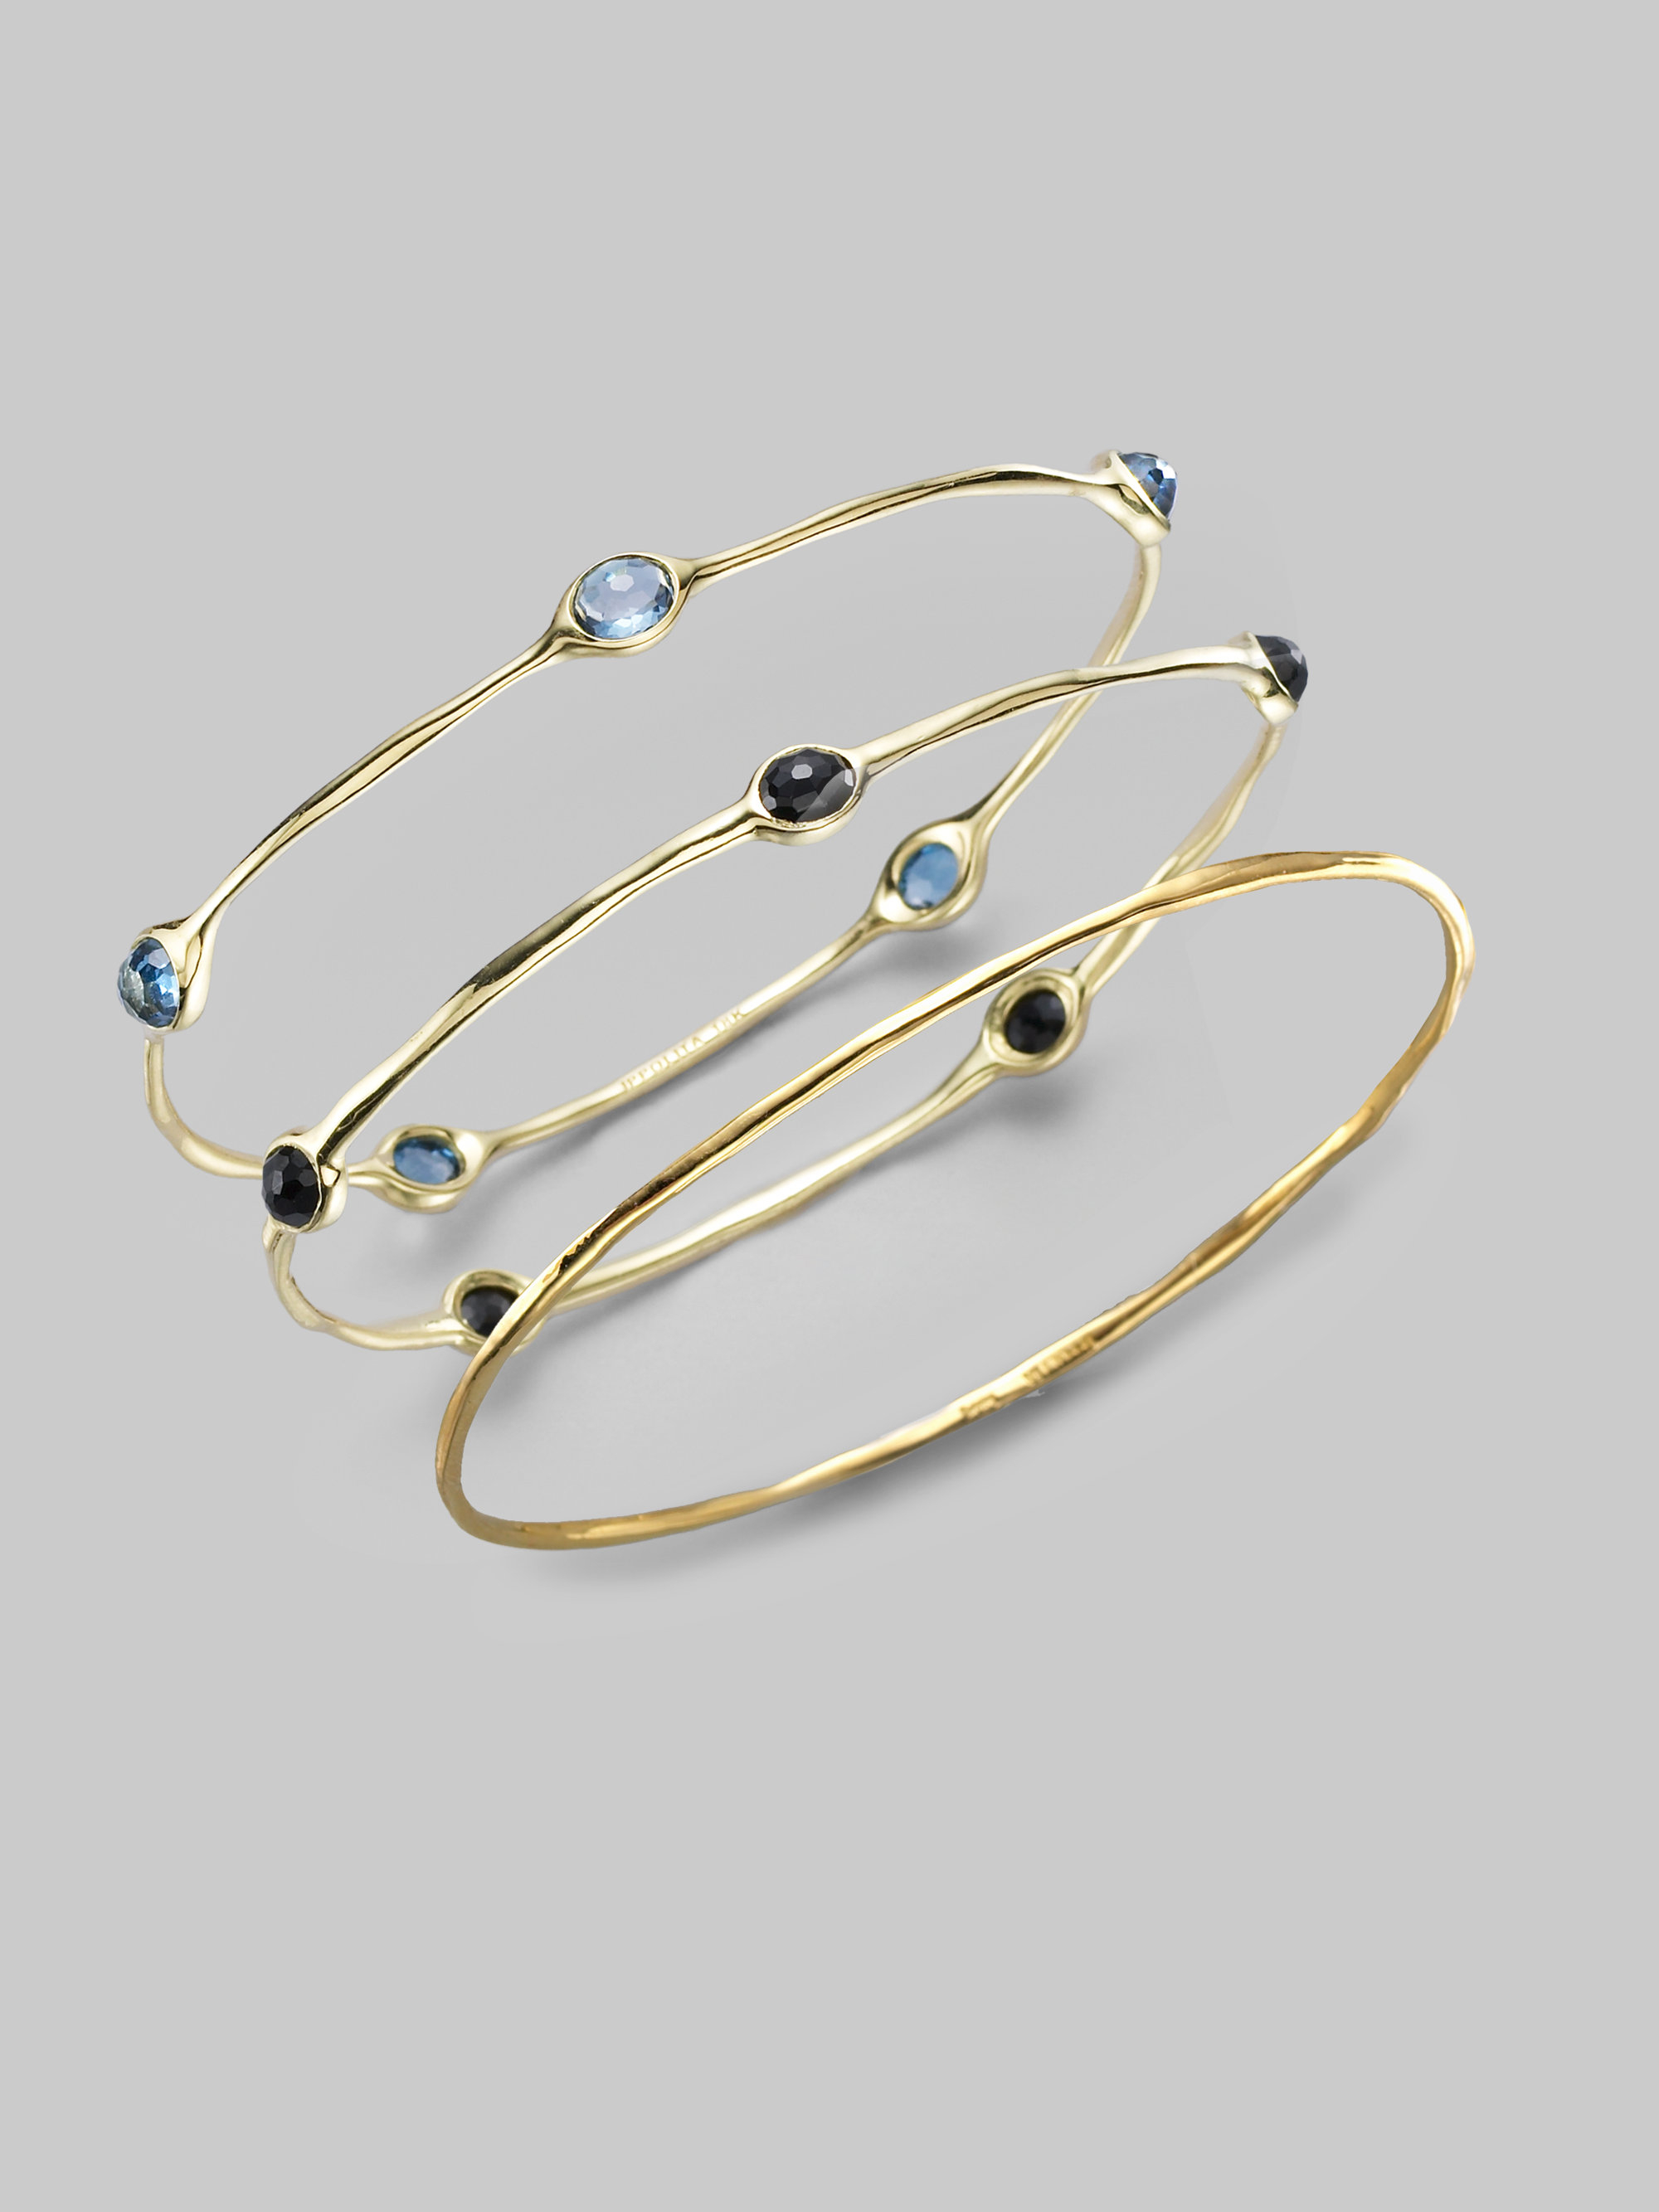 designer exports set pin shourya latest bangles bangle cz